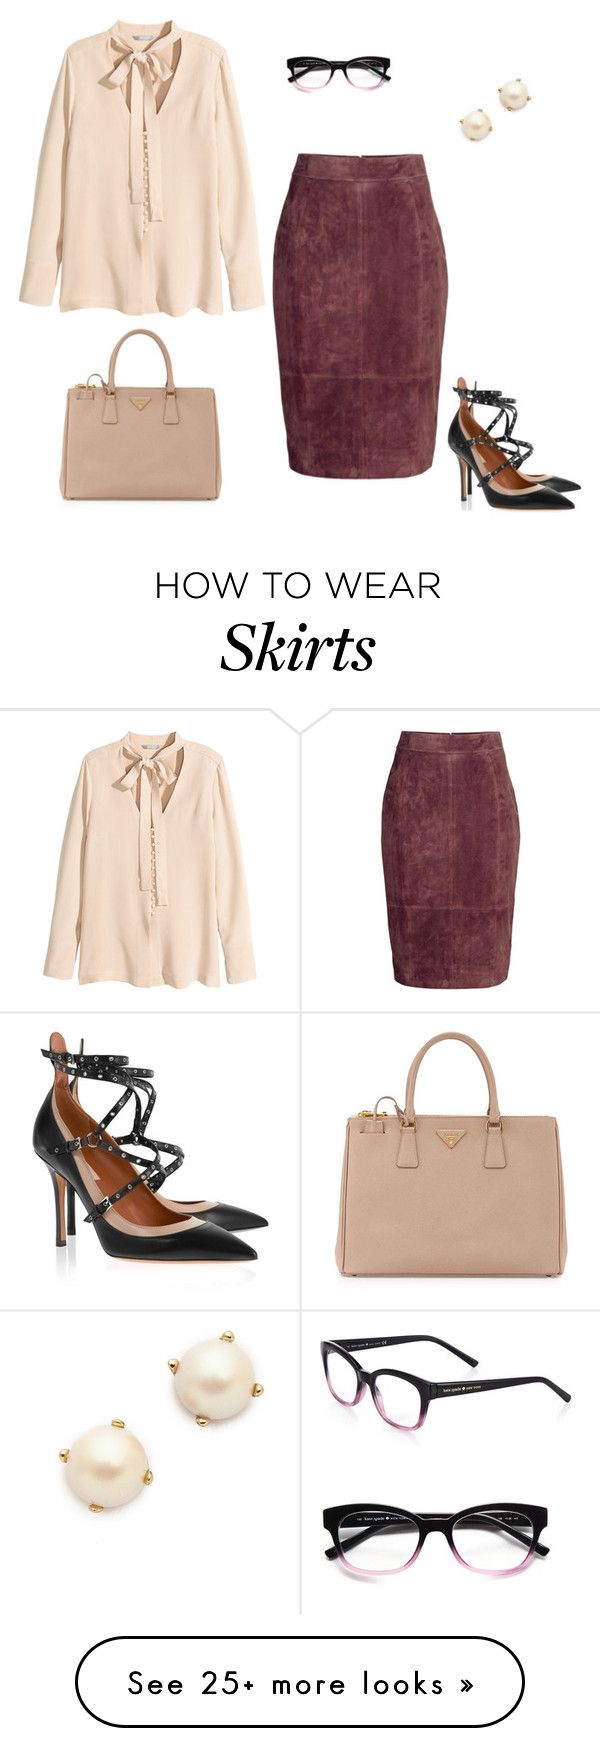 """""""Suede Pencil Skirt"""" by jpschwartz on Polyvore featuring H&M, Valentino, Prada and Kate Spade"""